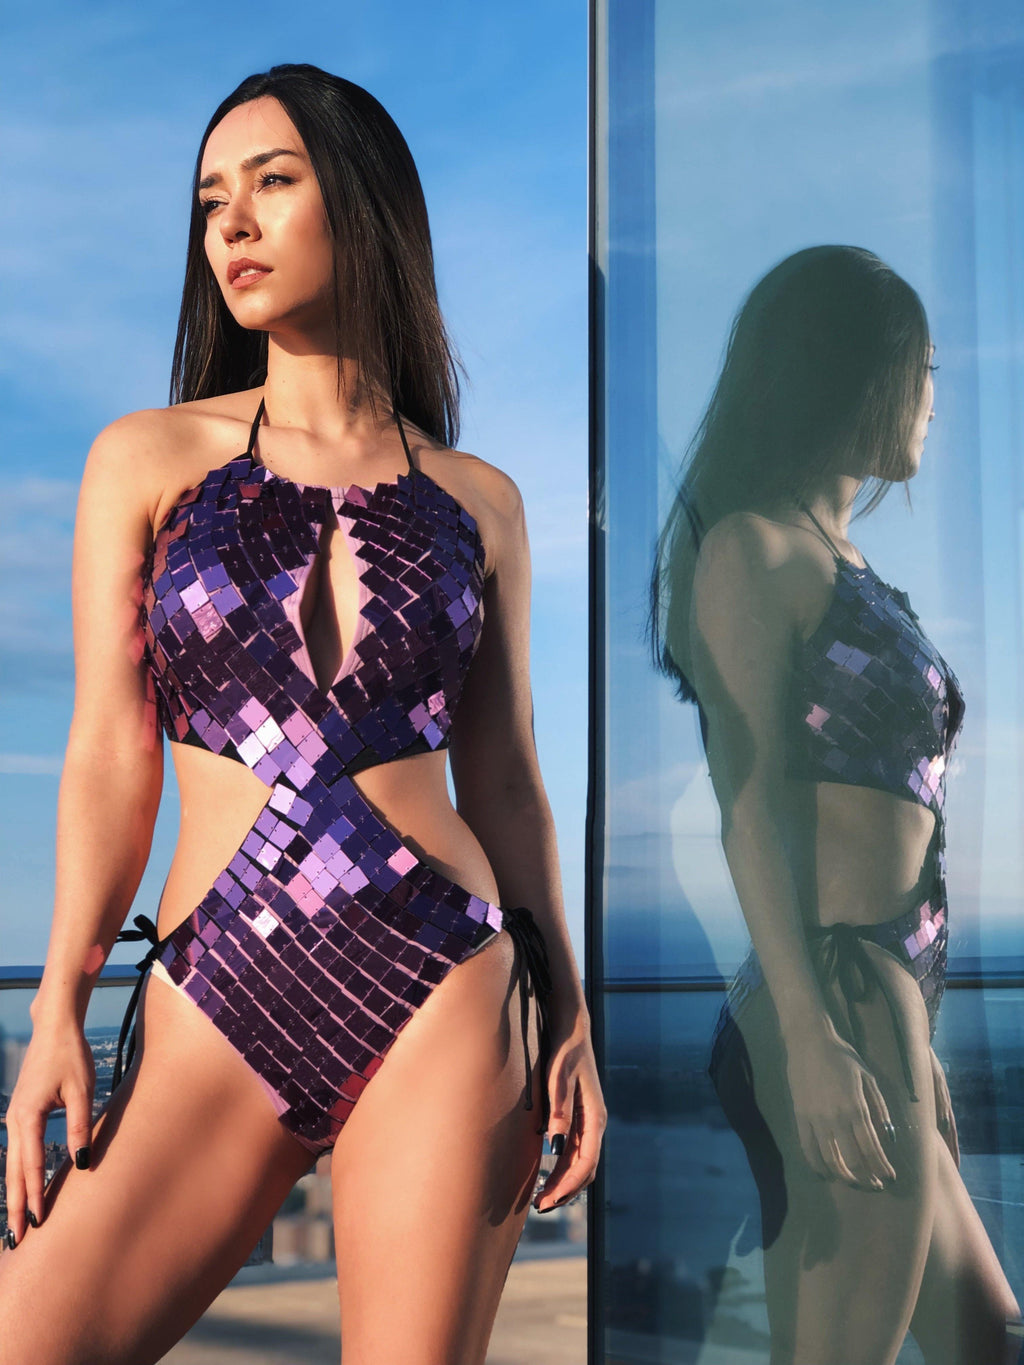 Eternity is the future bodysuit